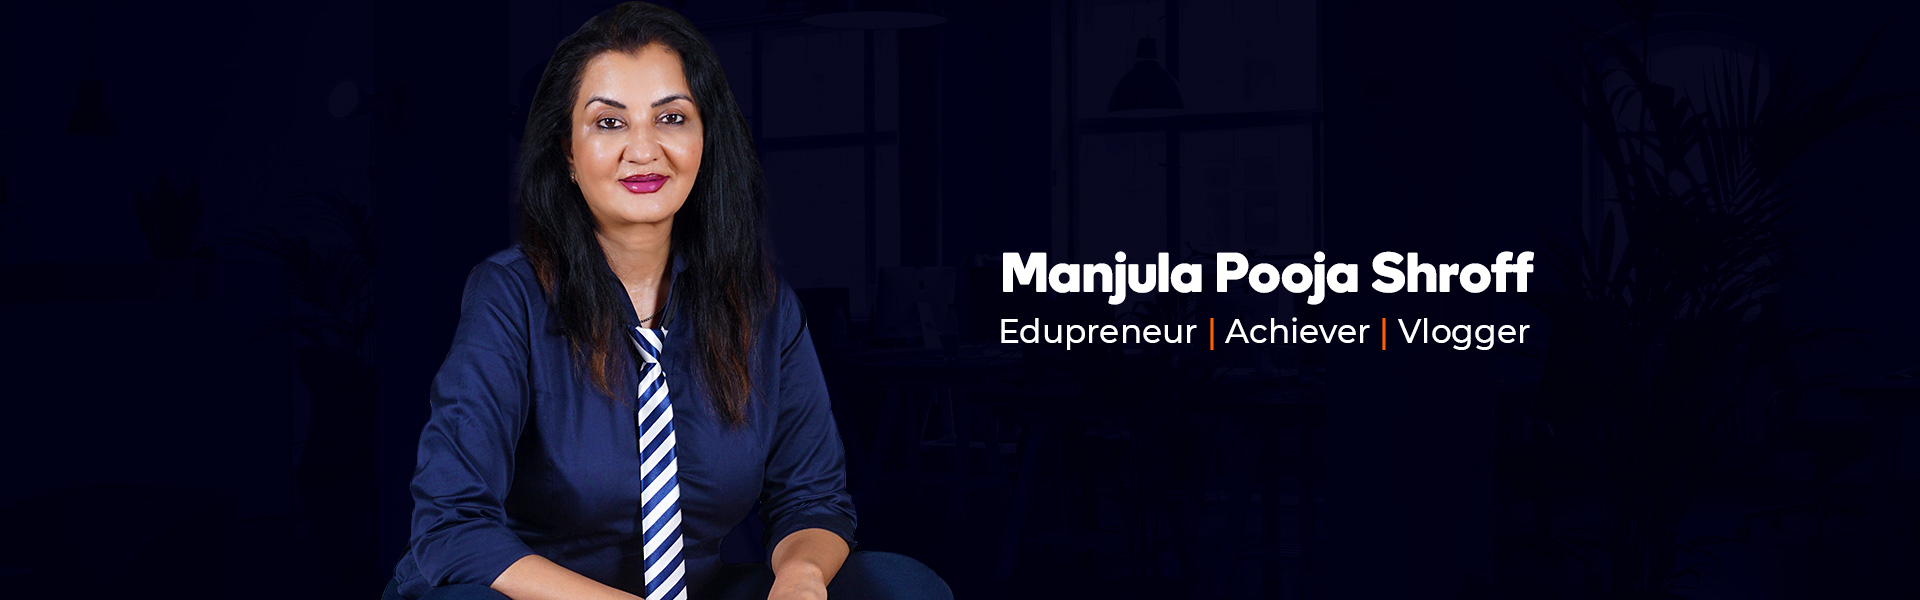 Pooja Manjula Shroff CEO of Kalorex Group MD of Kalorex Group An Edupreneur Vlogger Achiever